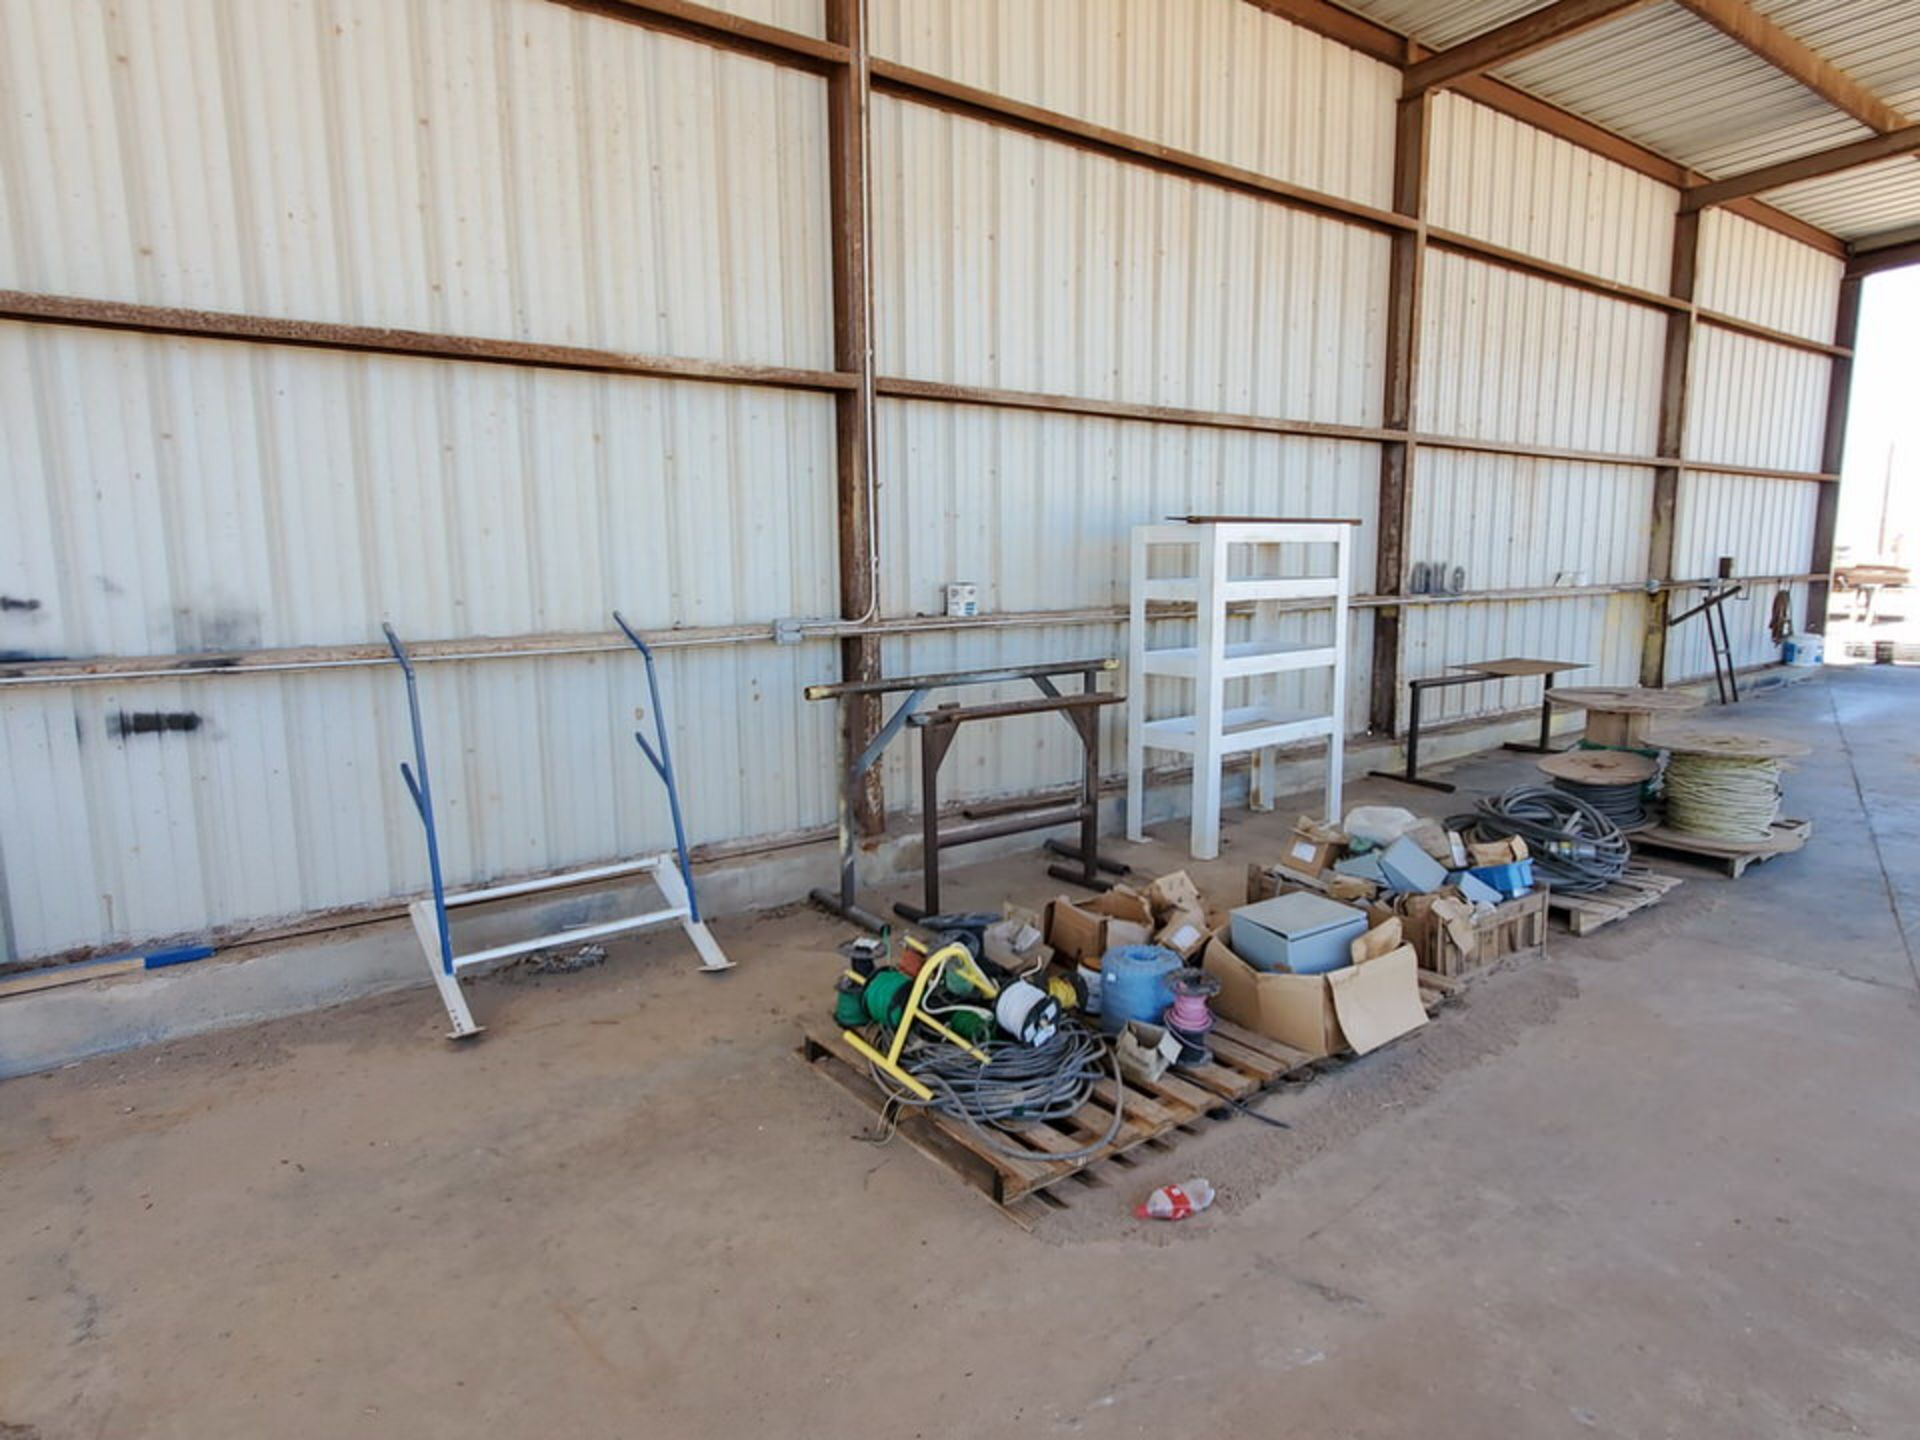 Misc. Matl. To Include But Not Limited To: Lift Basket, Welding Table, Sheet Metal, Ele Wire, Rope - Image 13 of 13